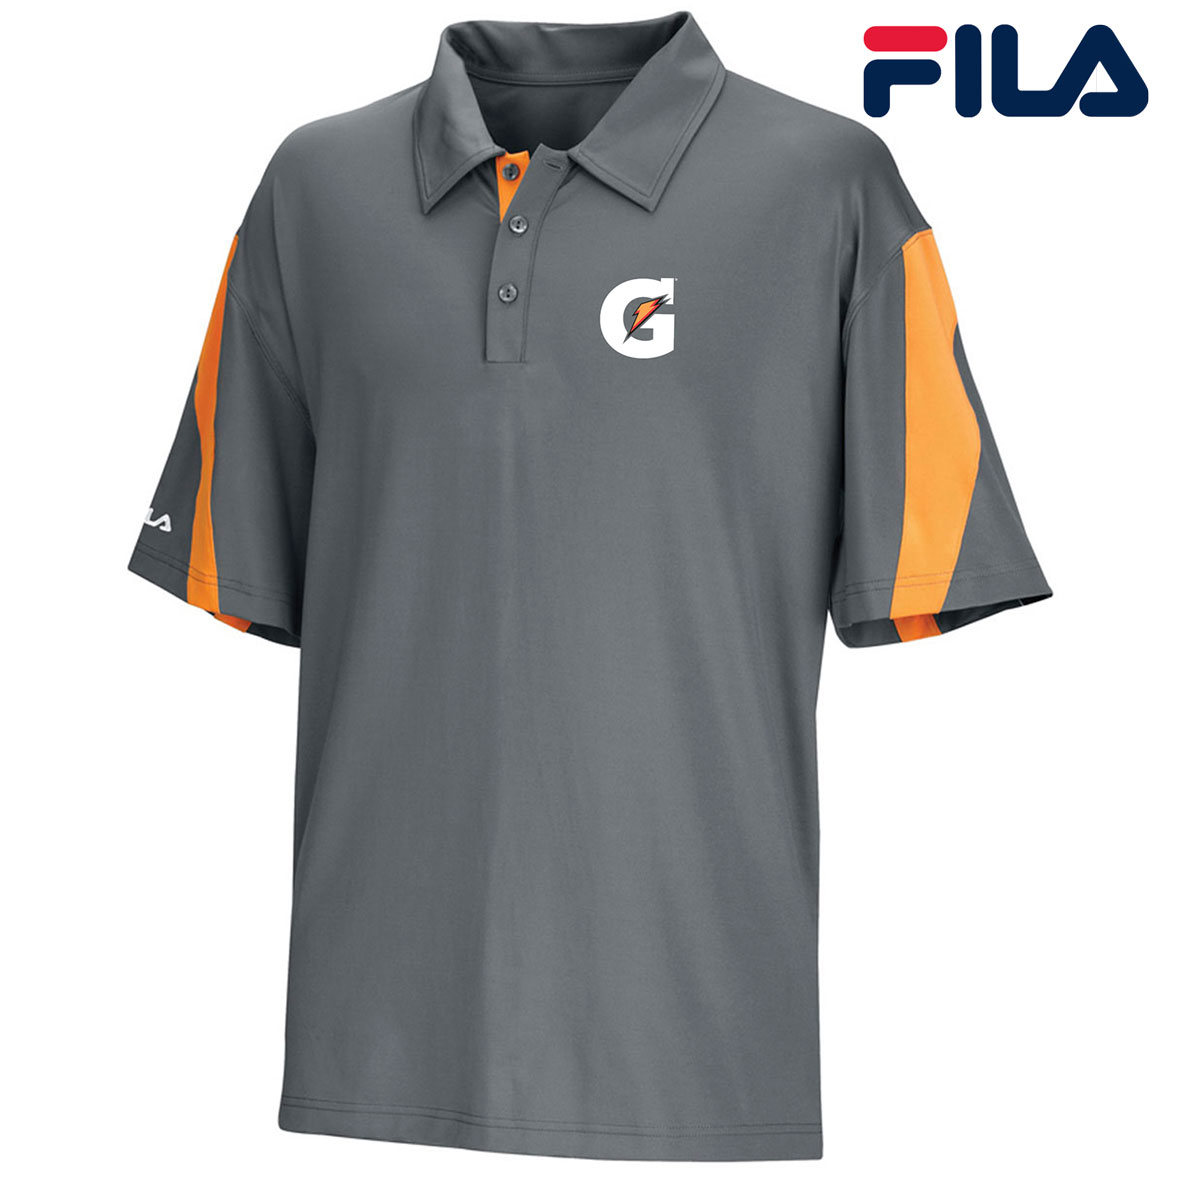 FILA Men's Scottsdale Polo - Gatorade